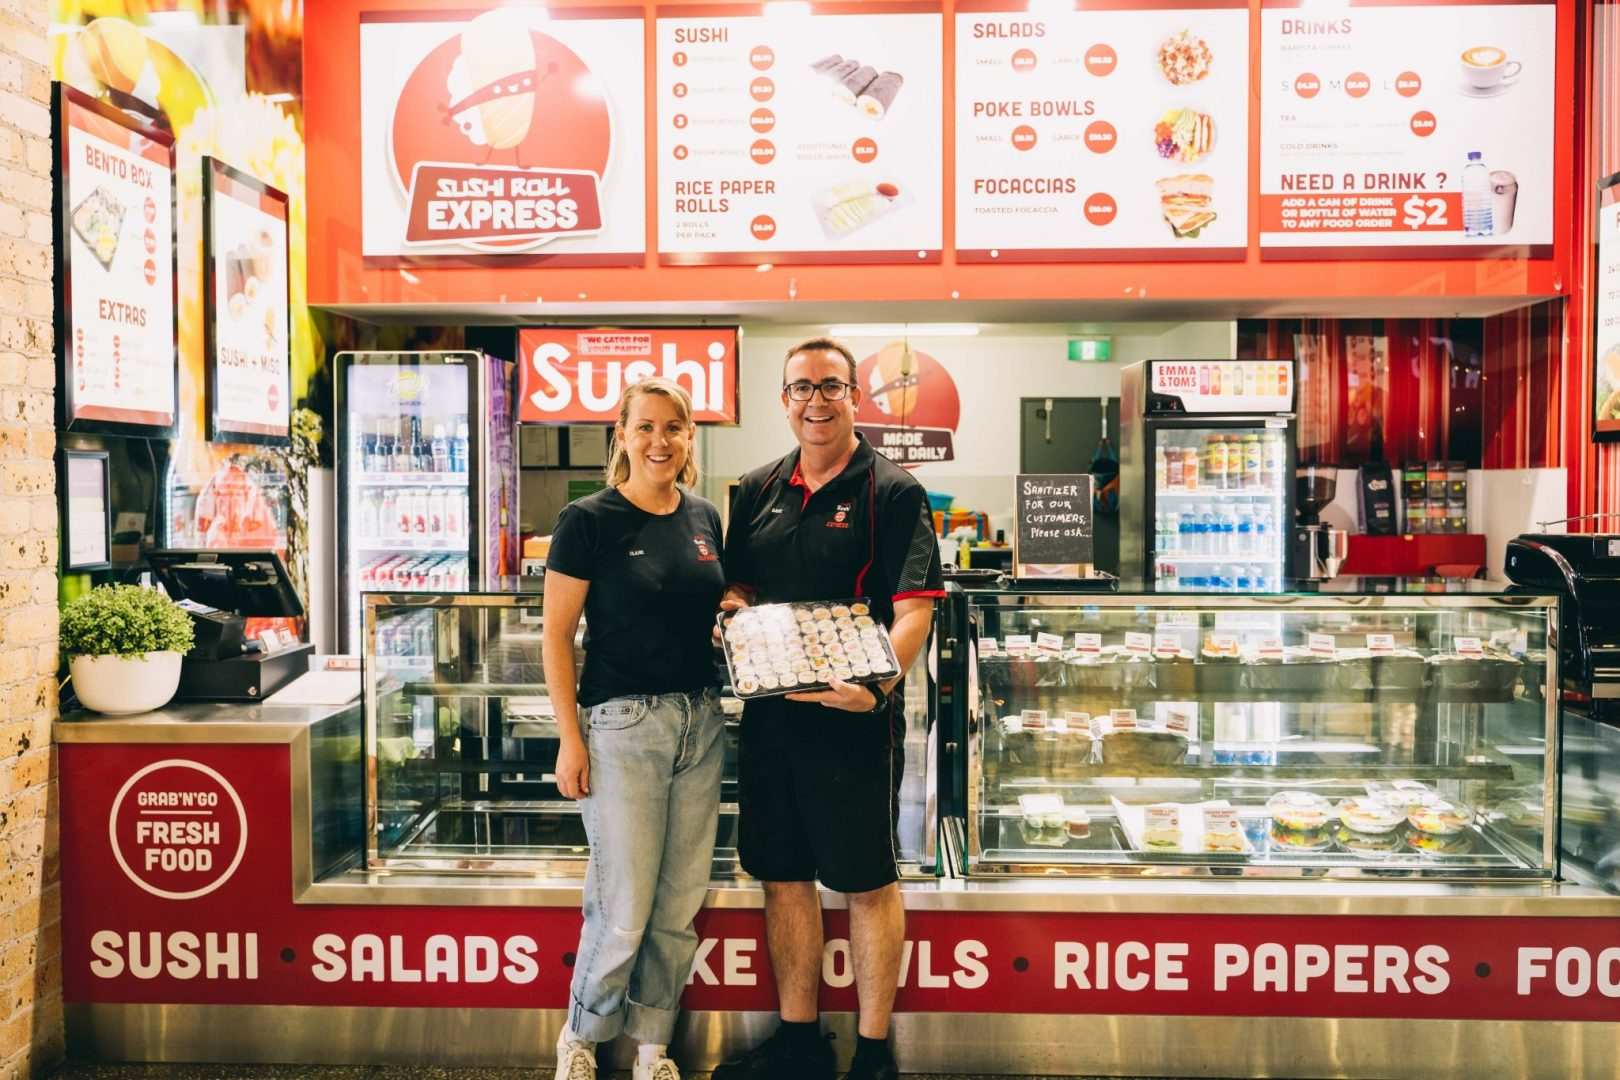 Coffs Harbour's Sushi Roll Express offers a new service with a smile